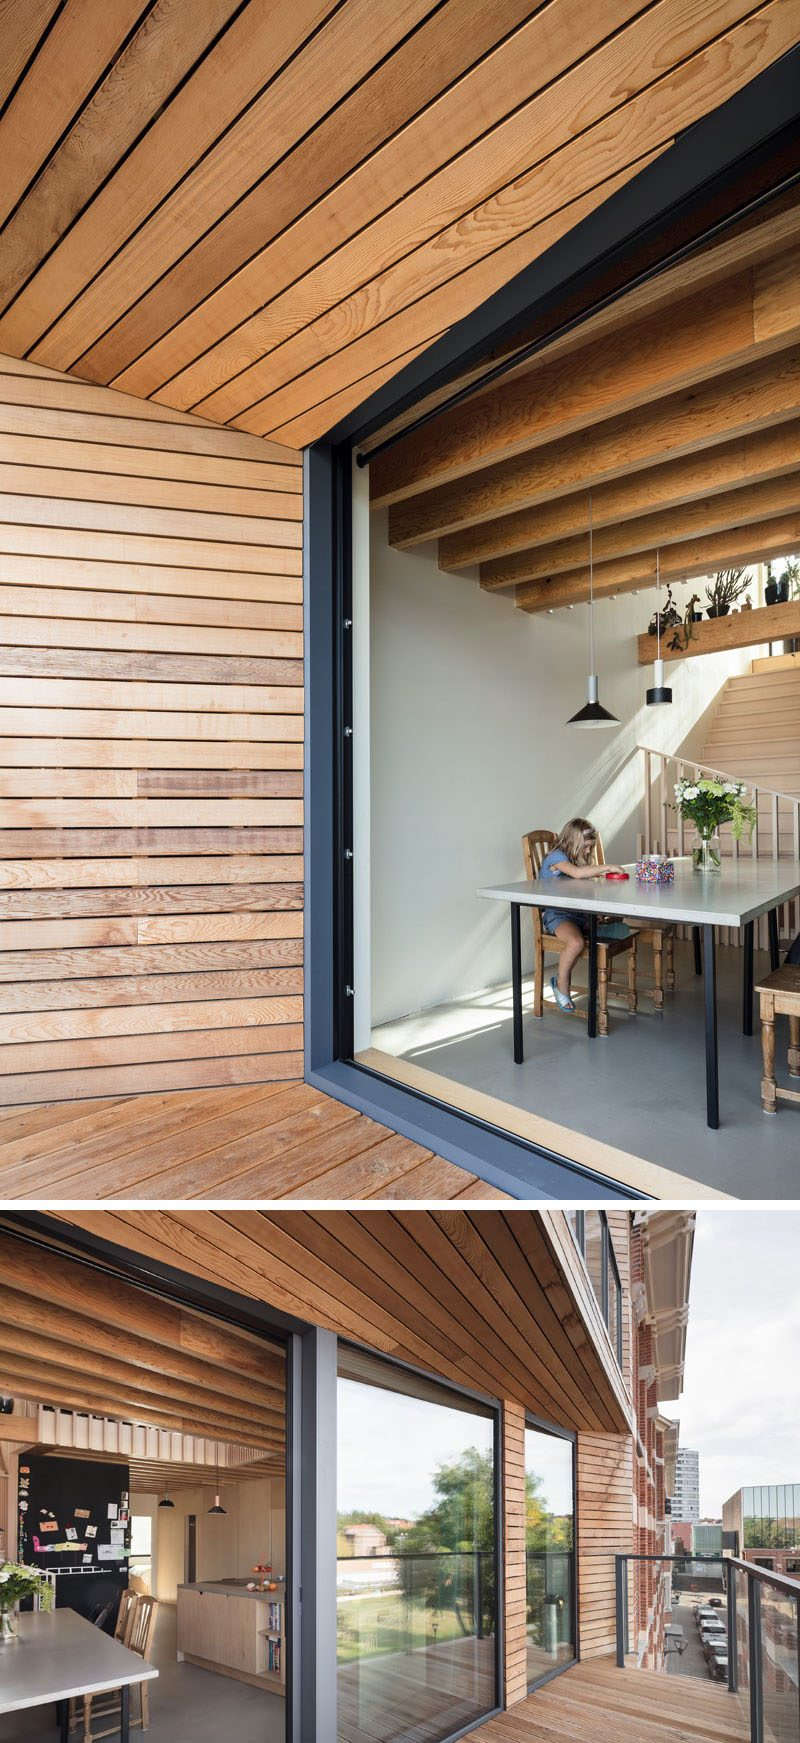 The dining area and kitchen of this modern house open up to the partially covered balcony that overlooks the city. #Balcony #ModernBalcony #WoodLinedBalcony